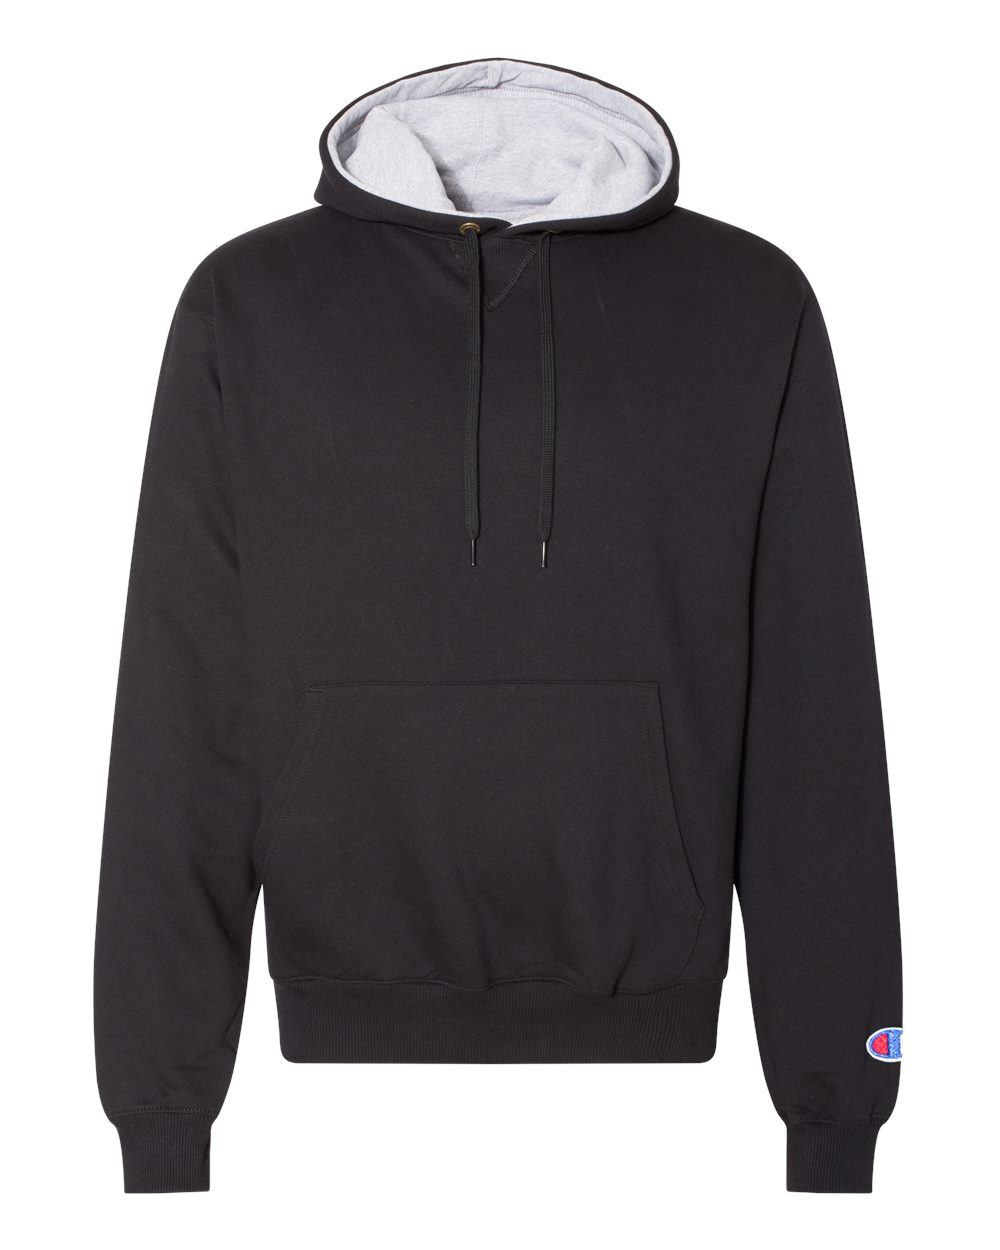 Champion-Mens-Cotton-Max-Hooded-Sweatshirt-Hoodie-Pullover-S171-up-to-3XL miniature 6